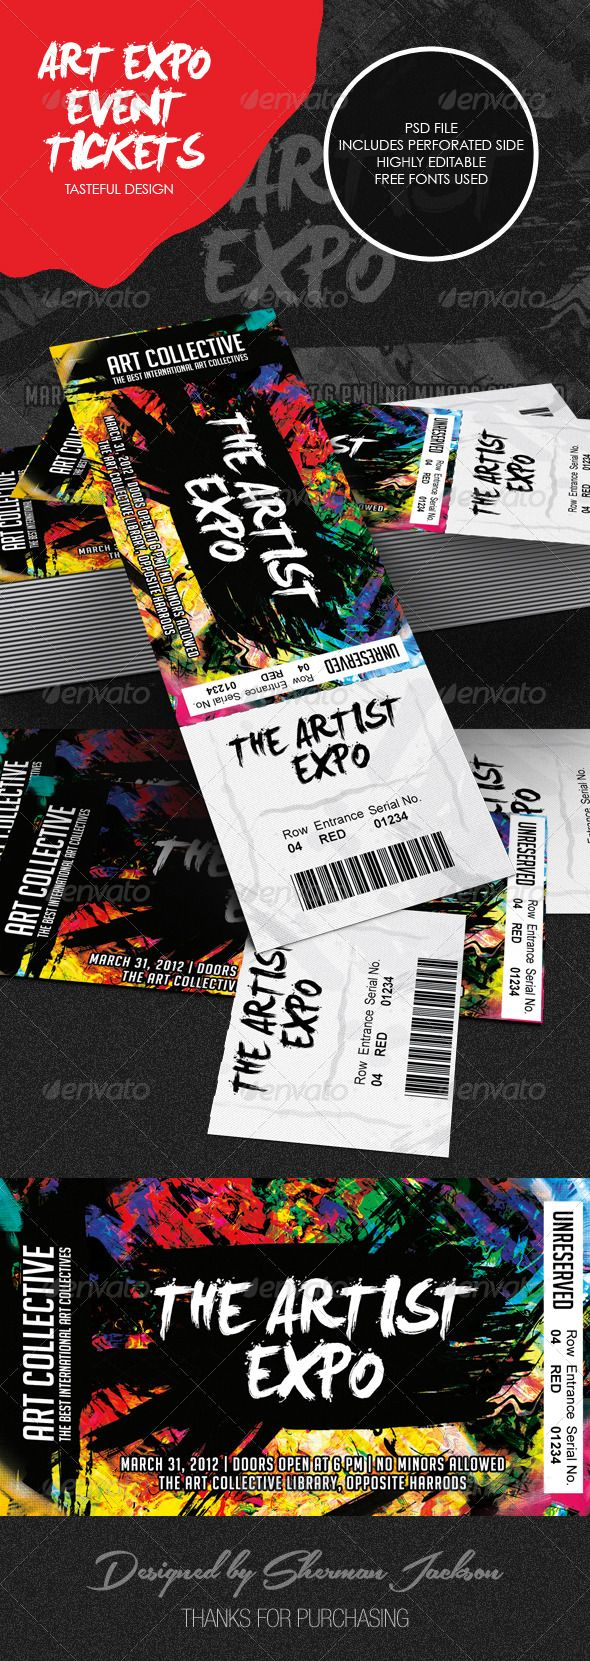 Concert Ticket Template Free Download Brilliant 14 Best Layoutstext And Images Images On Pinterest  Brochures .